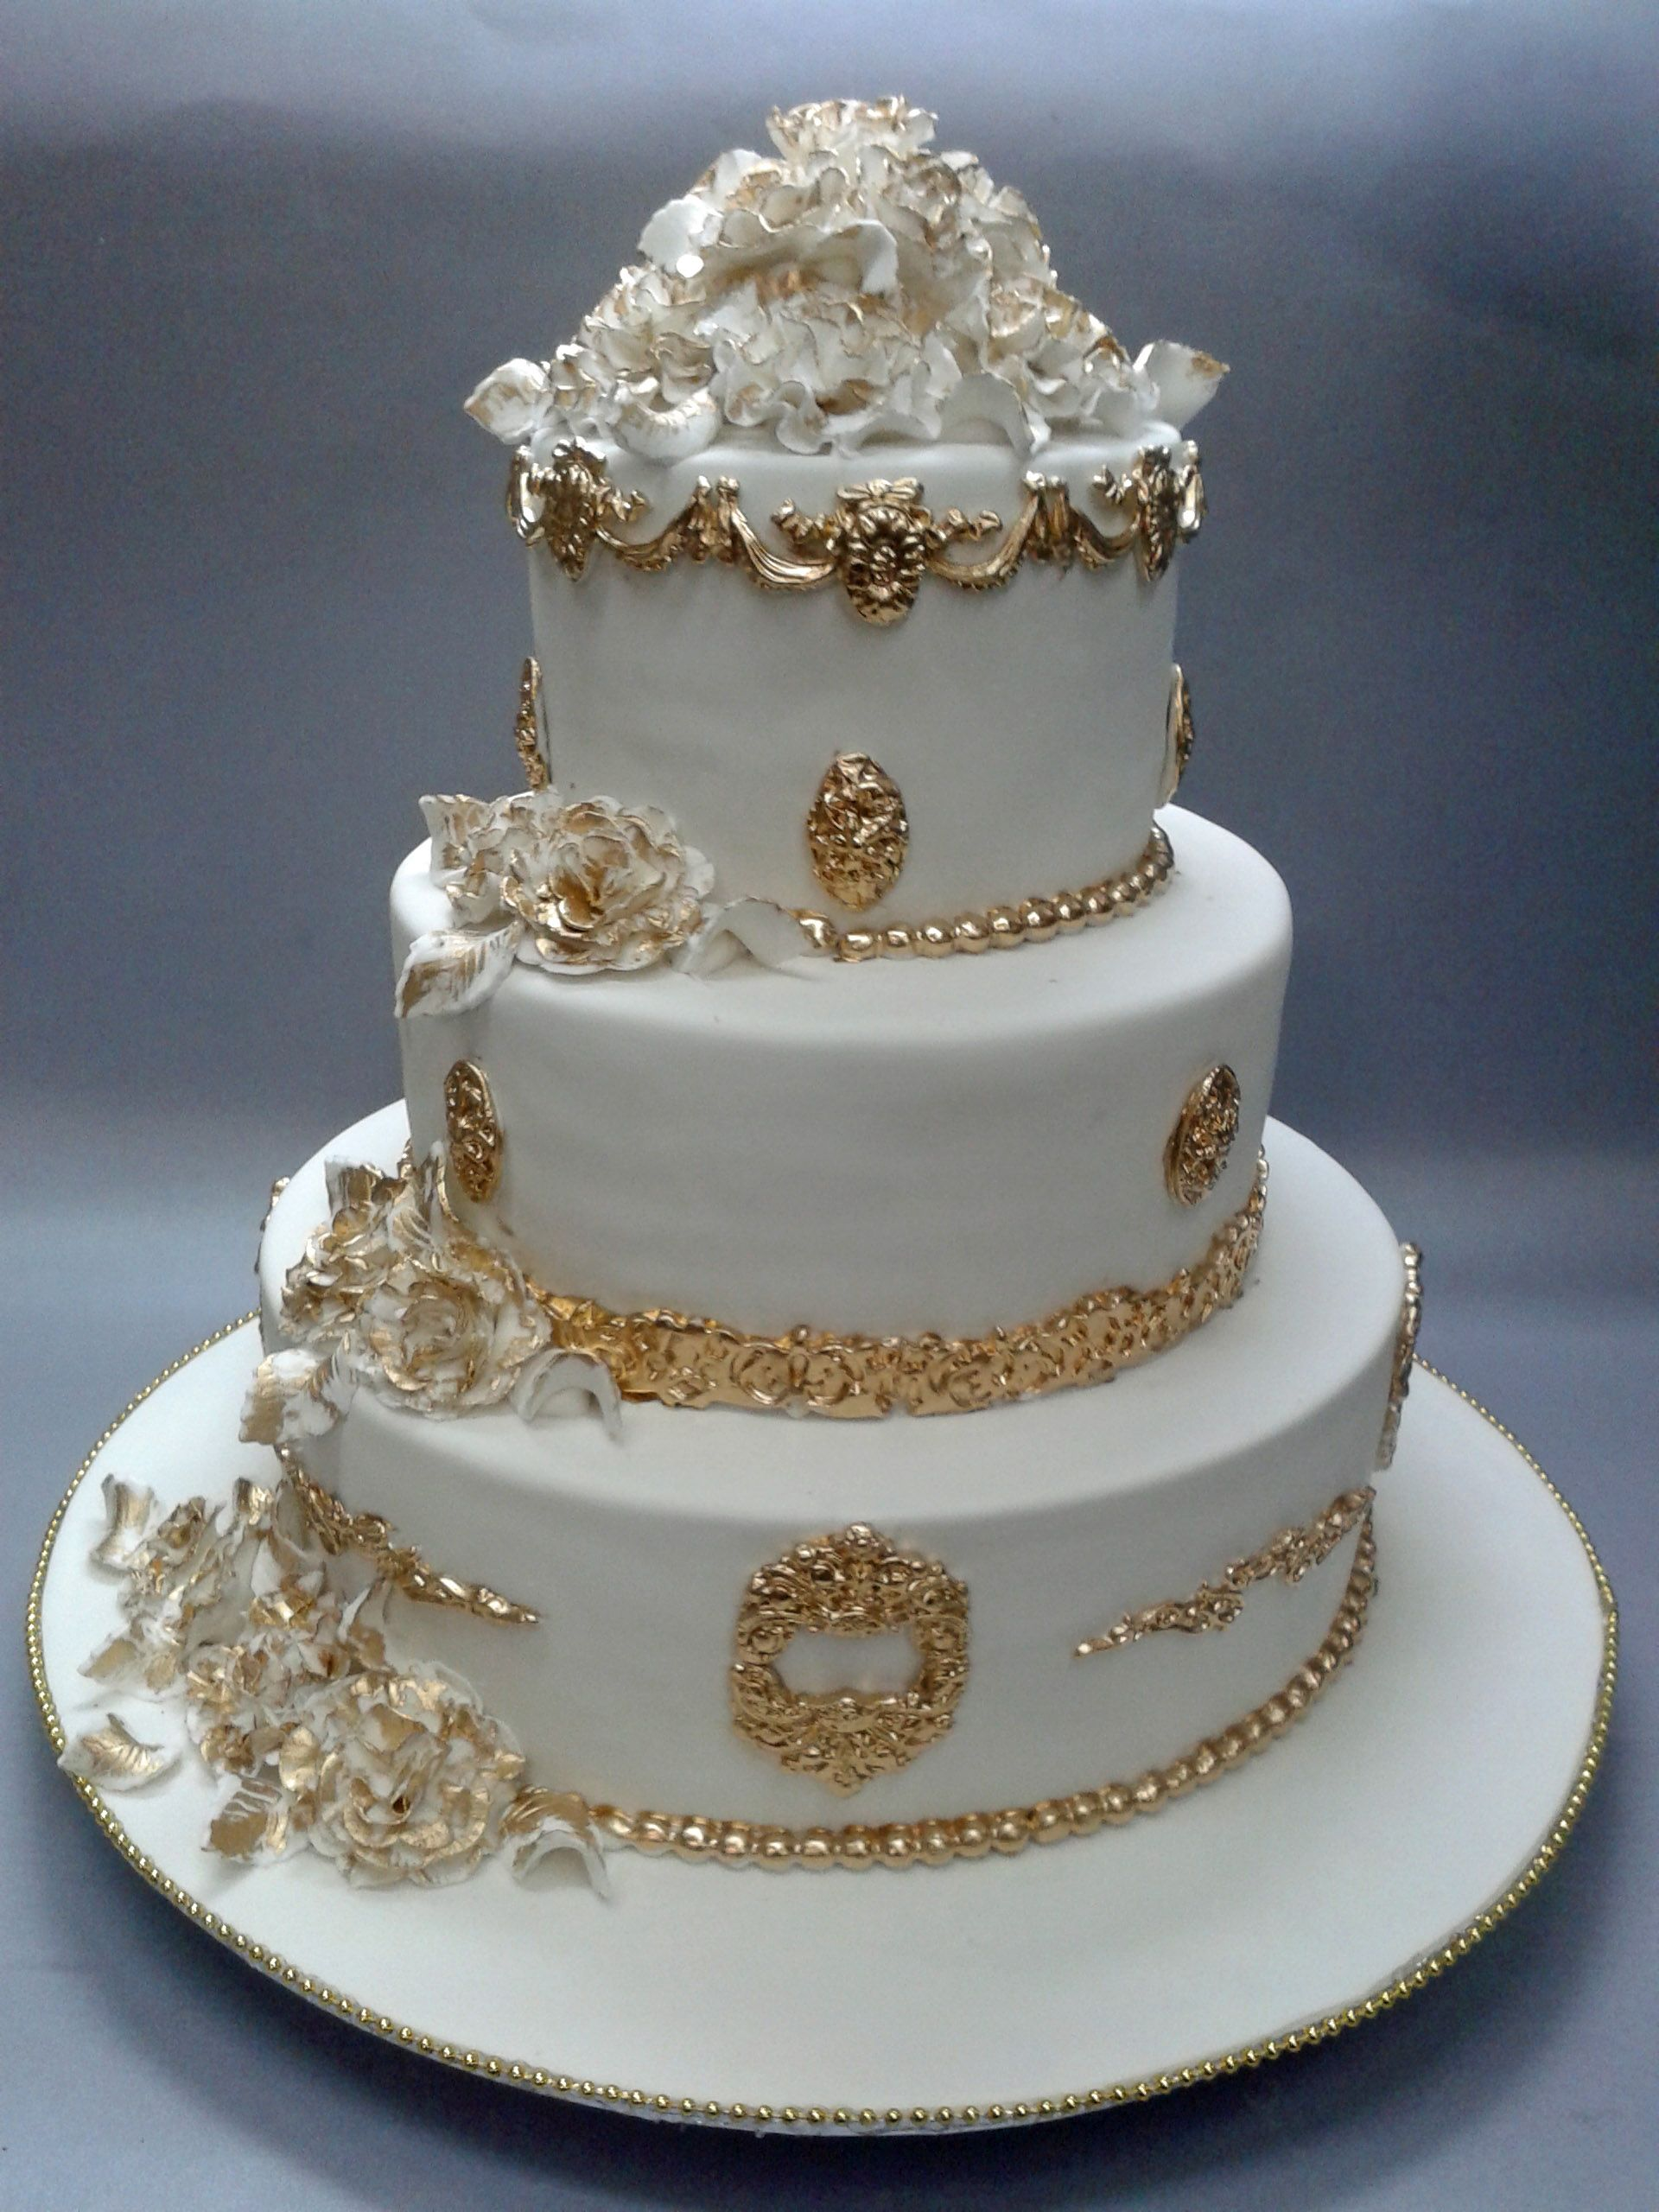 Rustic white amp gold for christian s baptism cake cakes dessert - A Luxury Collection Wedding Cake From Bunty Mahajan S Signature Range